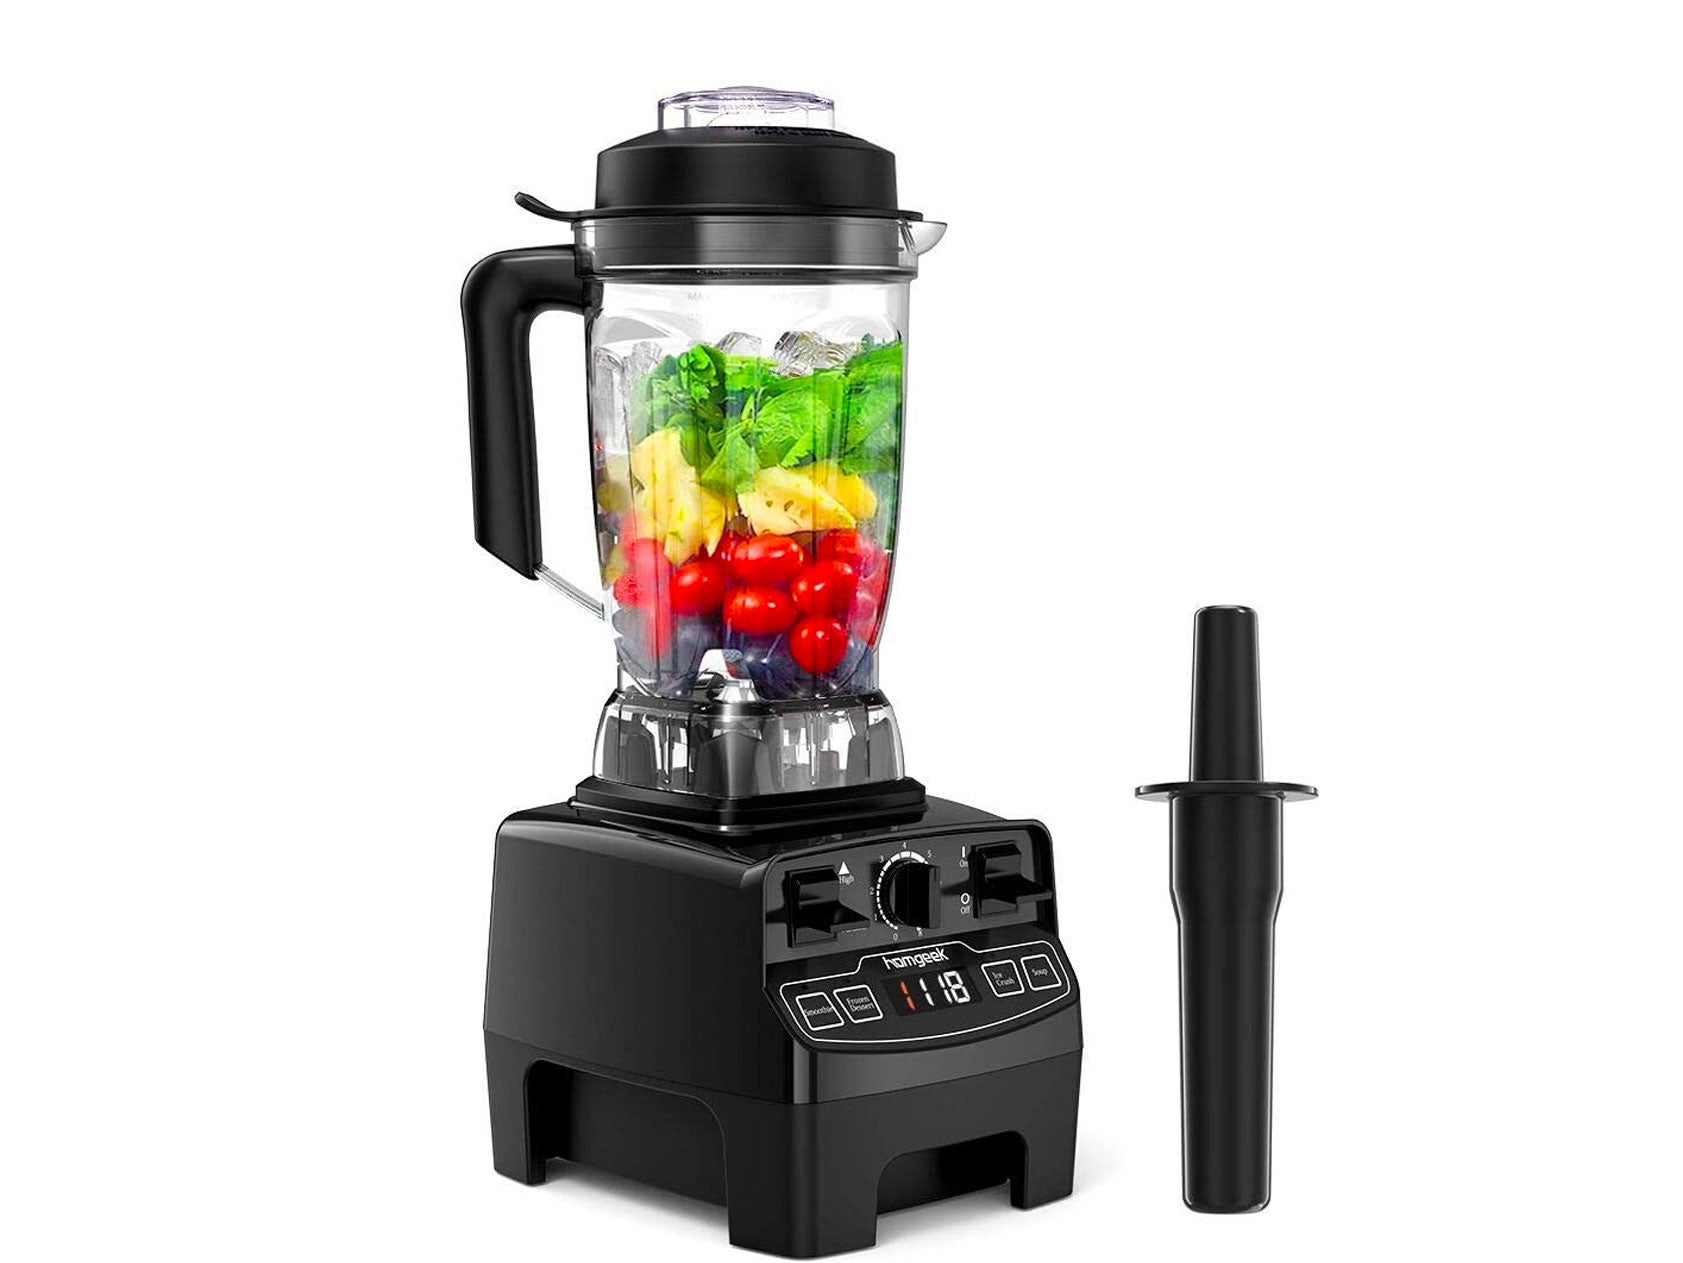 Homgeek Blender Smoothie Maker,2000W 8-Speed Smoothie Blender with 2L BPA-Free Tritan Container,33000 RPM High Speed Professional Blender with 4 Blending Presets for Ice/Soup/Nuts,Black